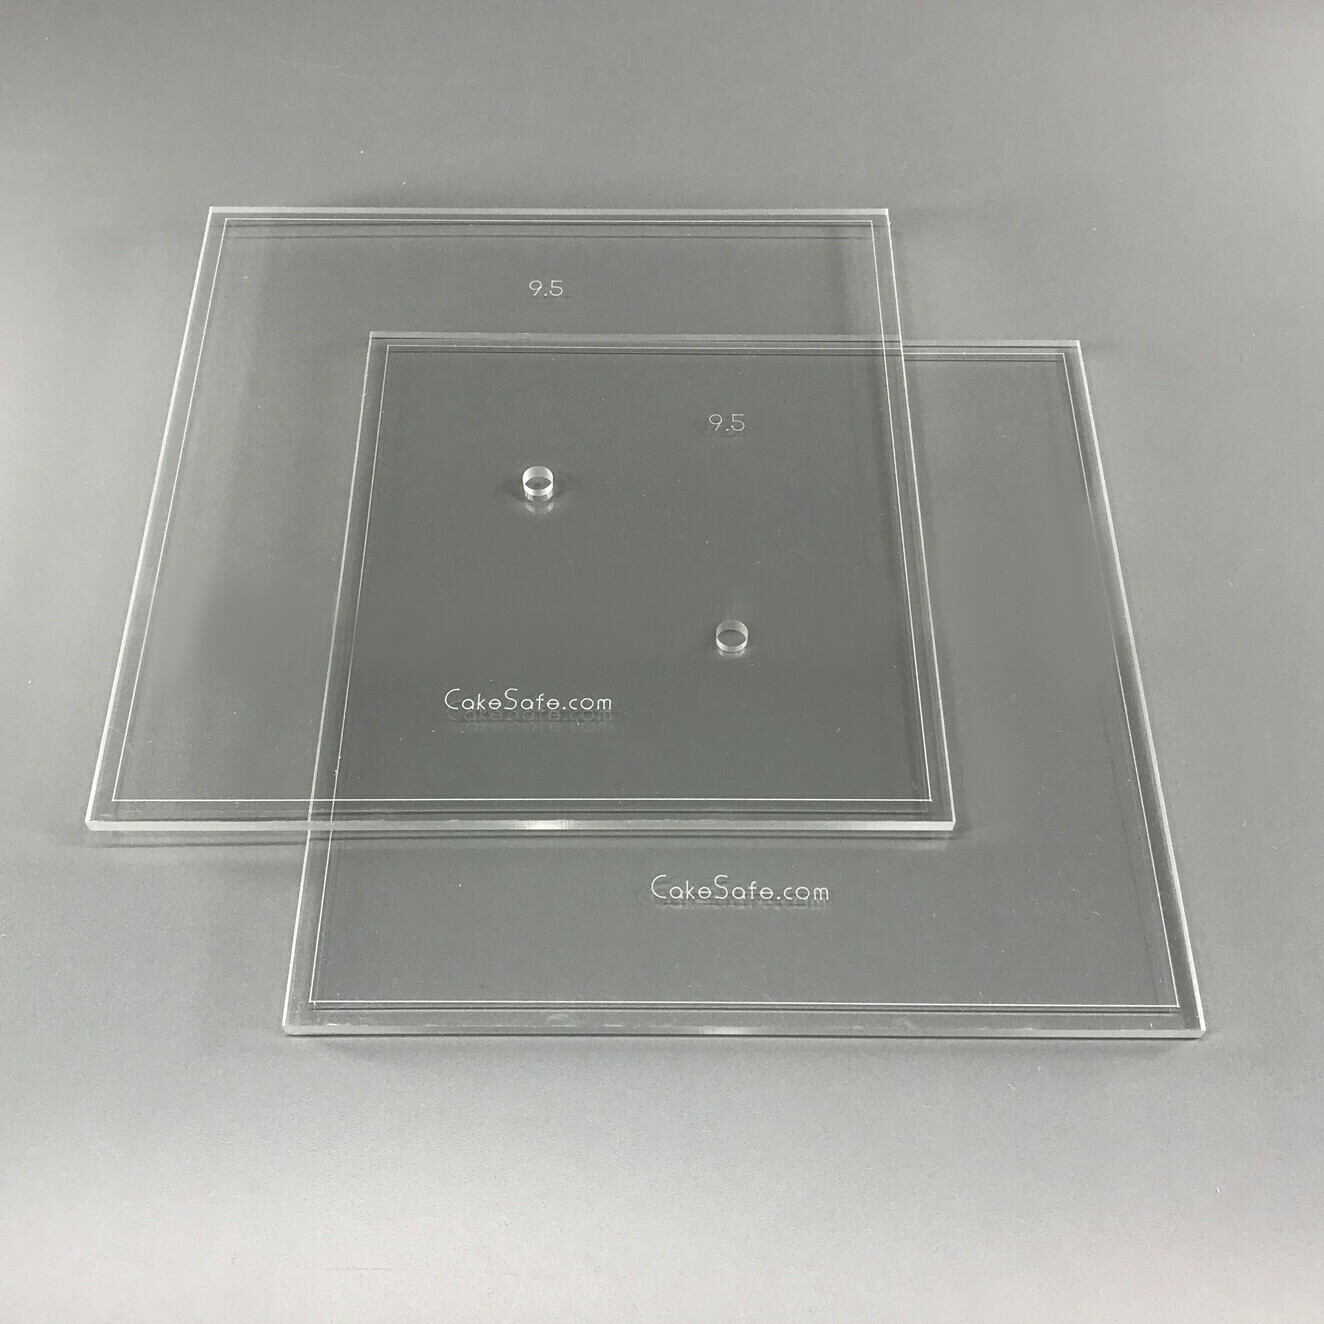 """6"""" Square 0.5"""" Acrylic Cake Disk with Center Hole - 2 Discs"""